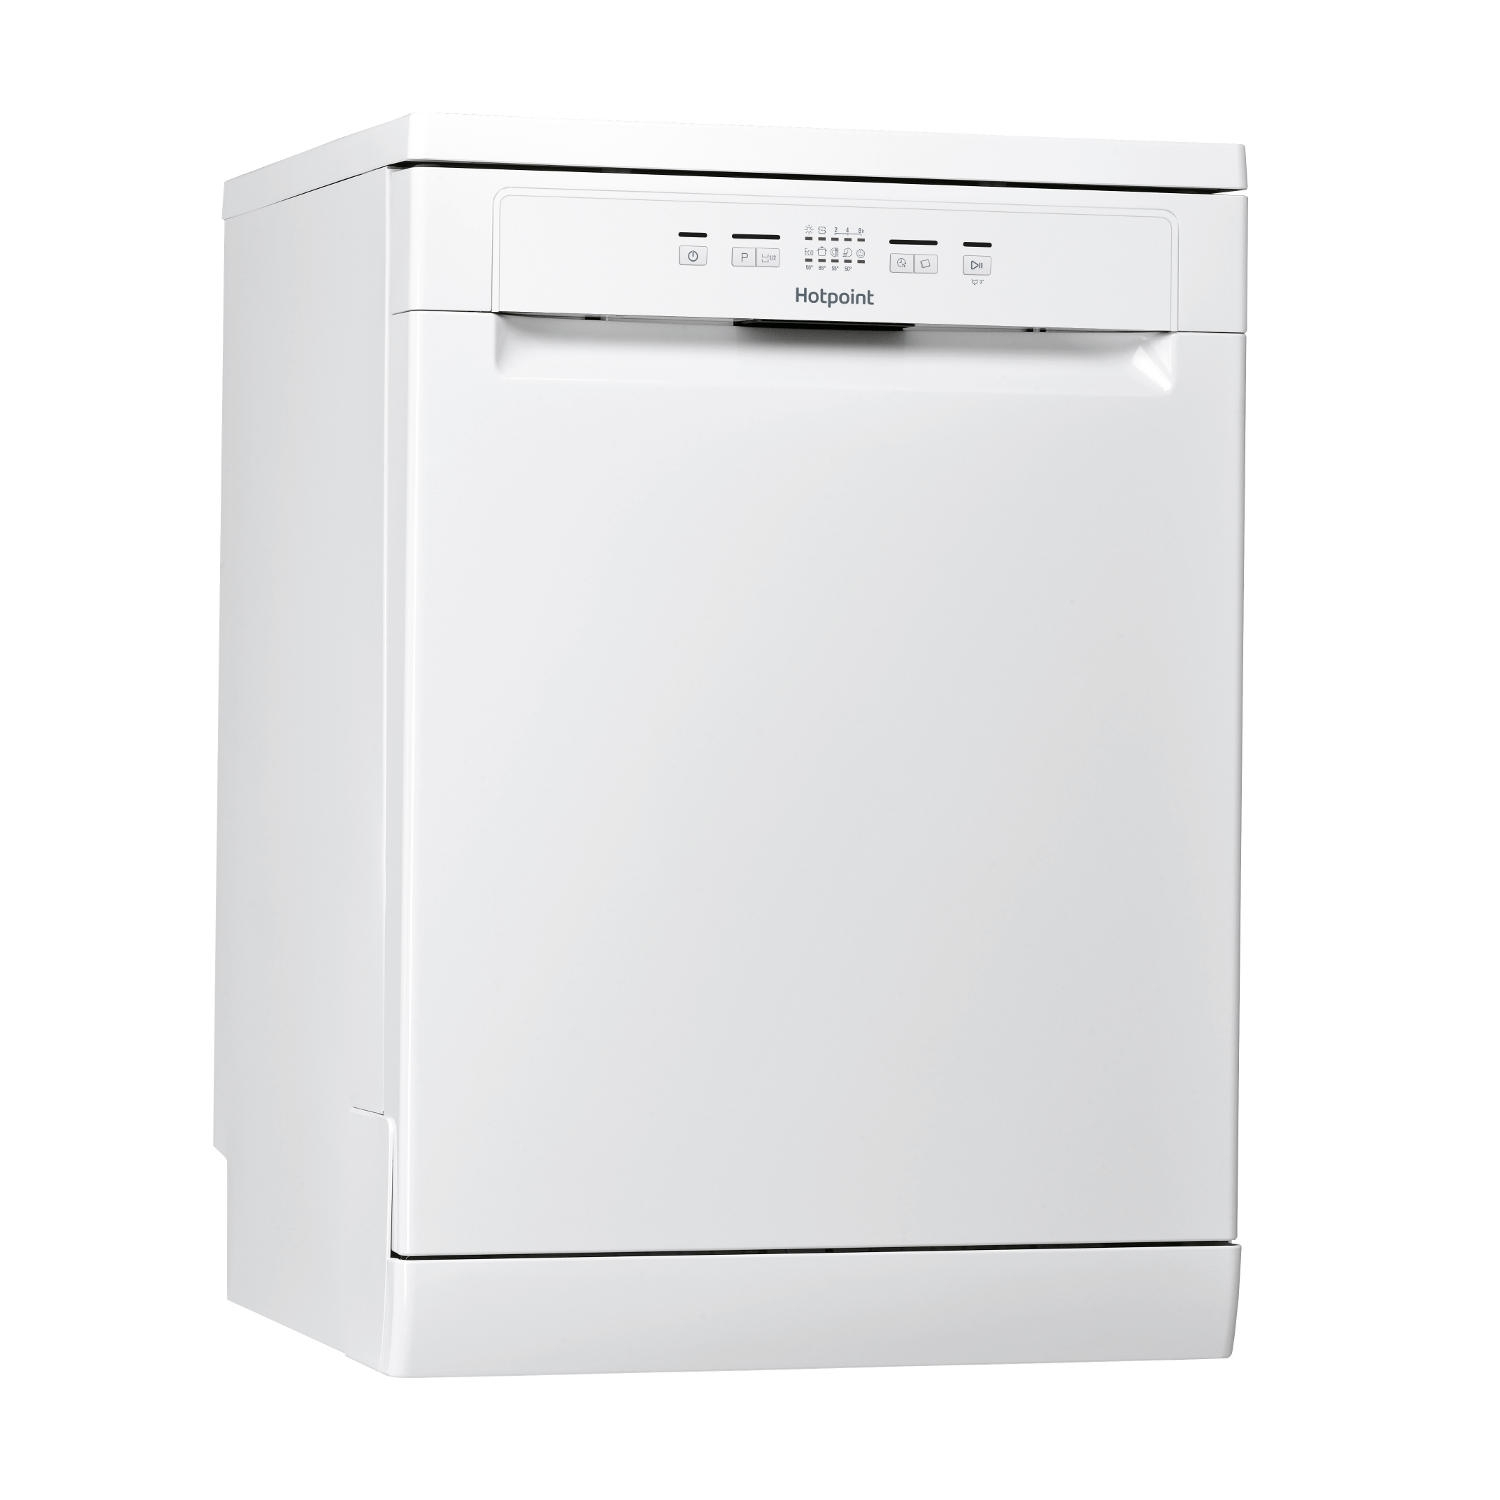 Hotpoint Full Size Dishwasher - White - A+ Rated - 1